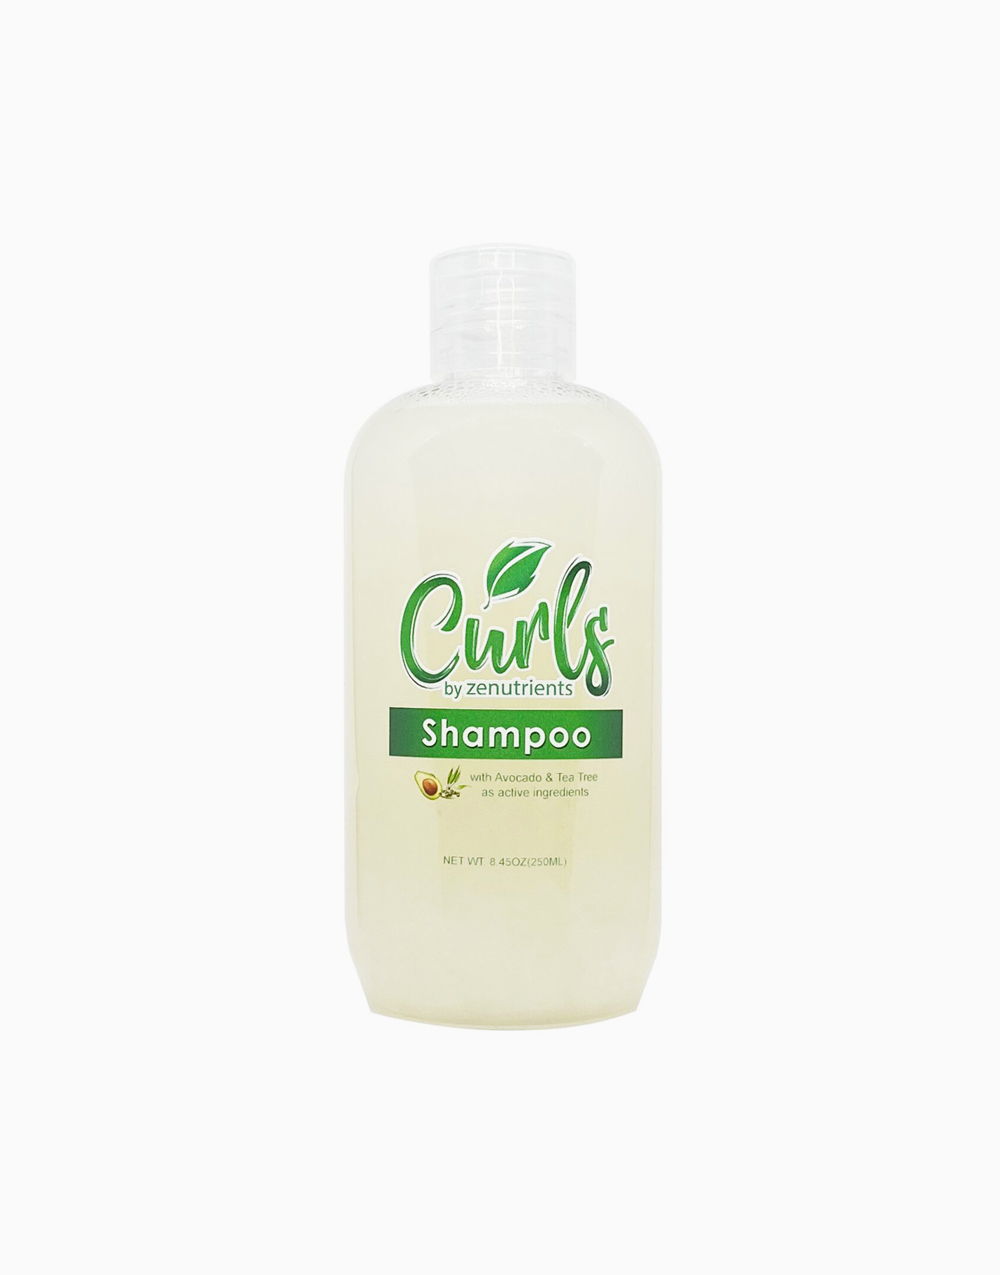 Curls by Zenutrients Avocado & Tea Tree Sulfate-Free Shampoo (250ml) by Zenutrients